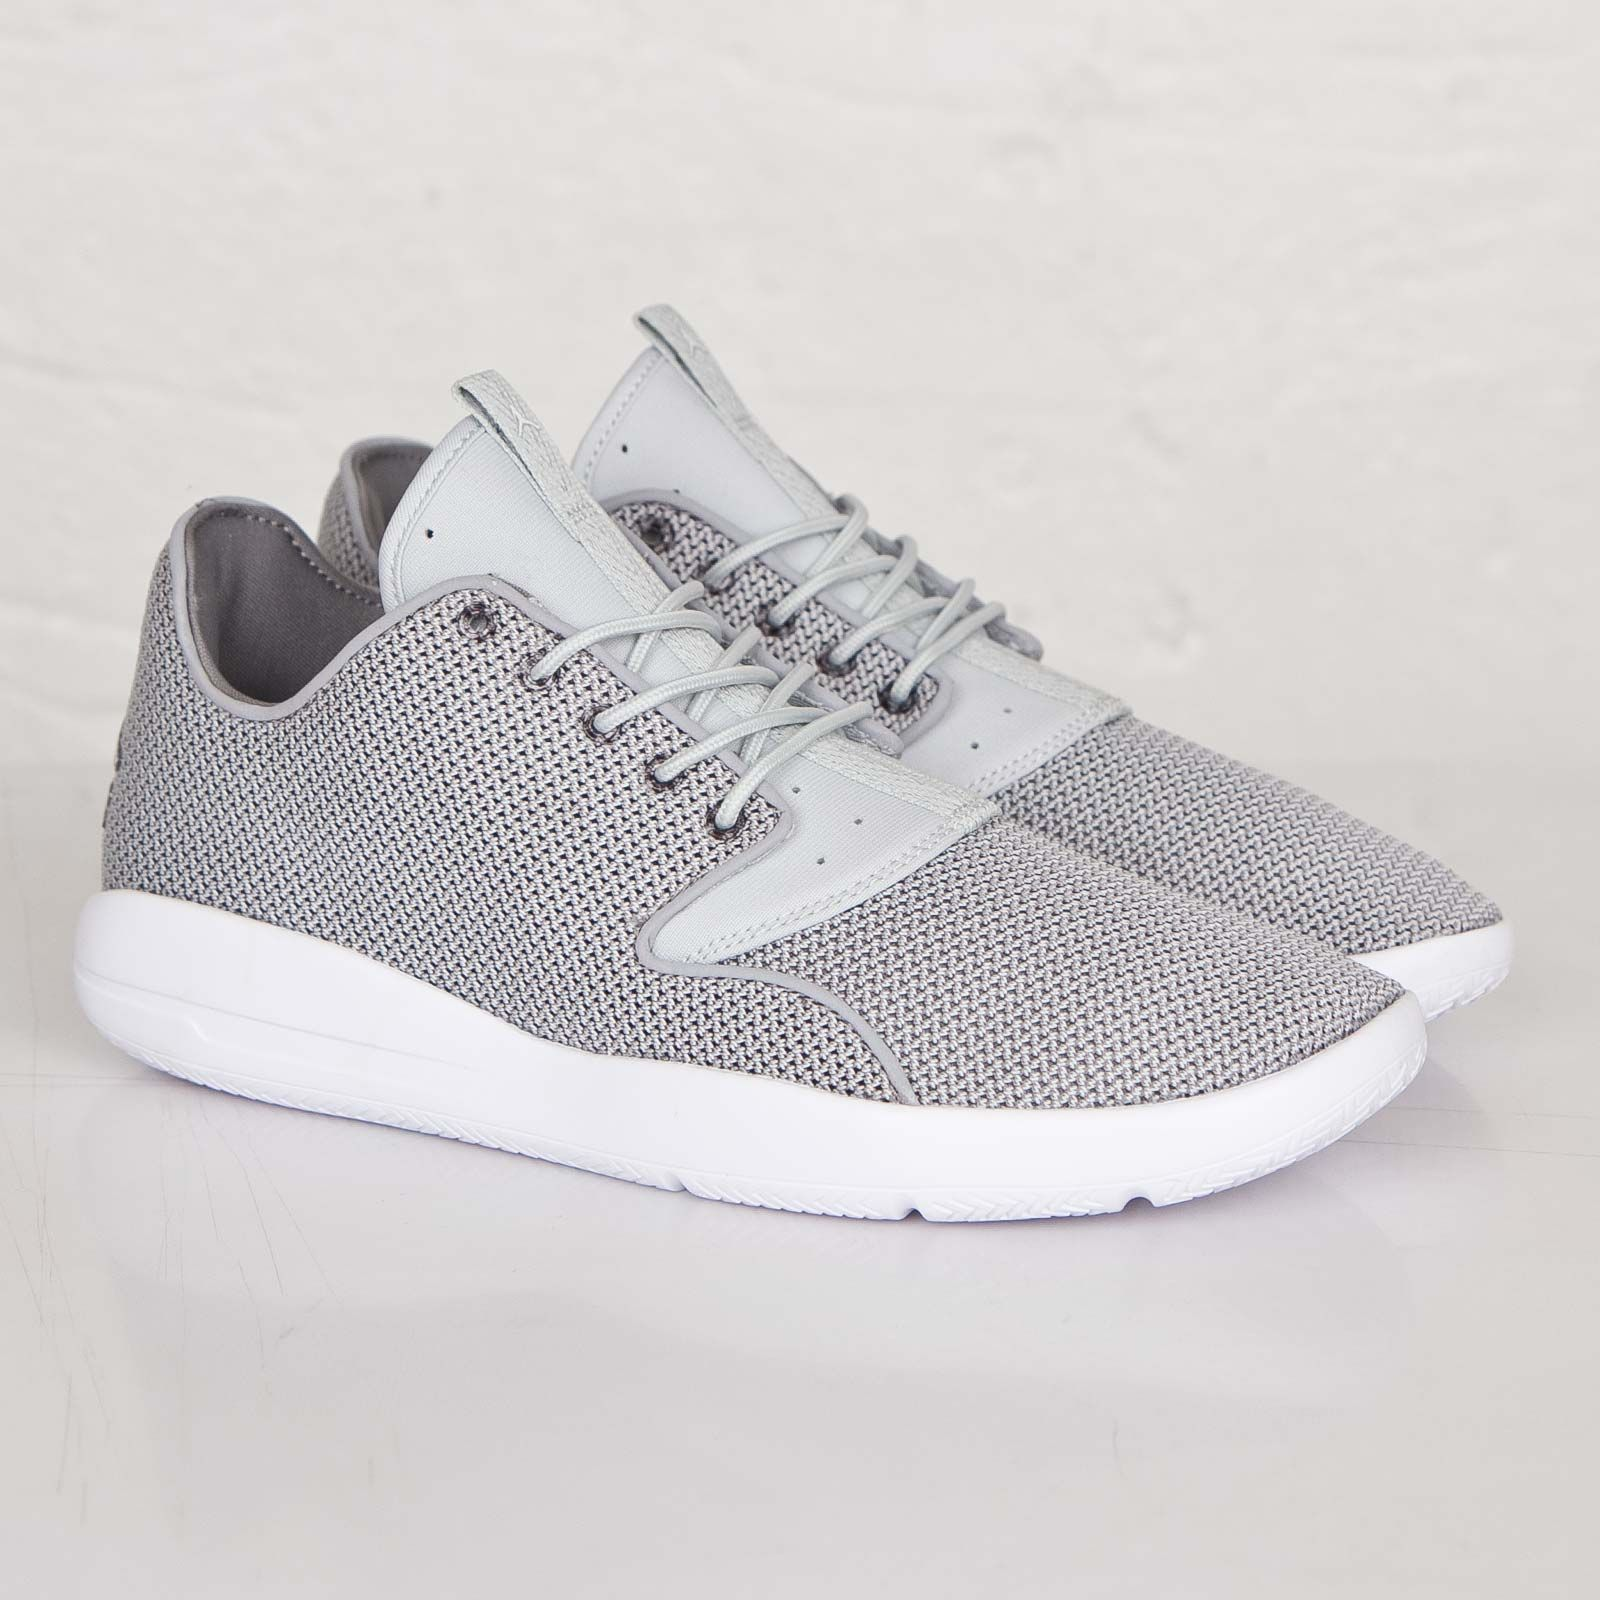 grey jordan shoes women